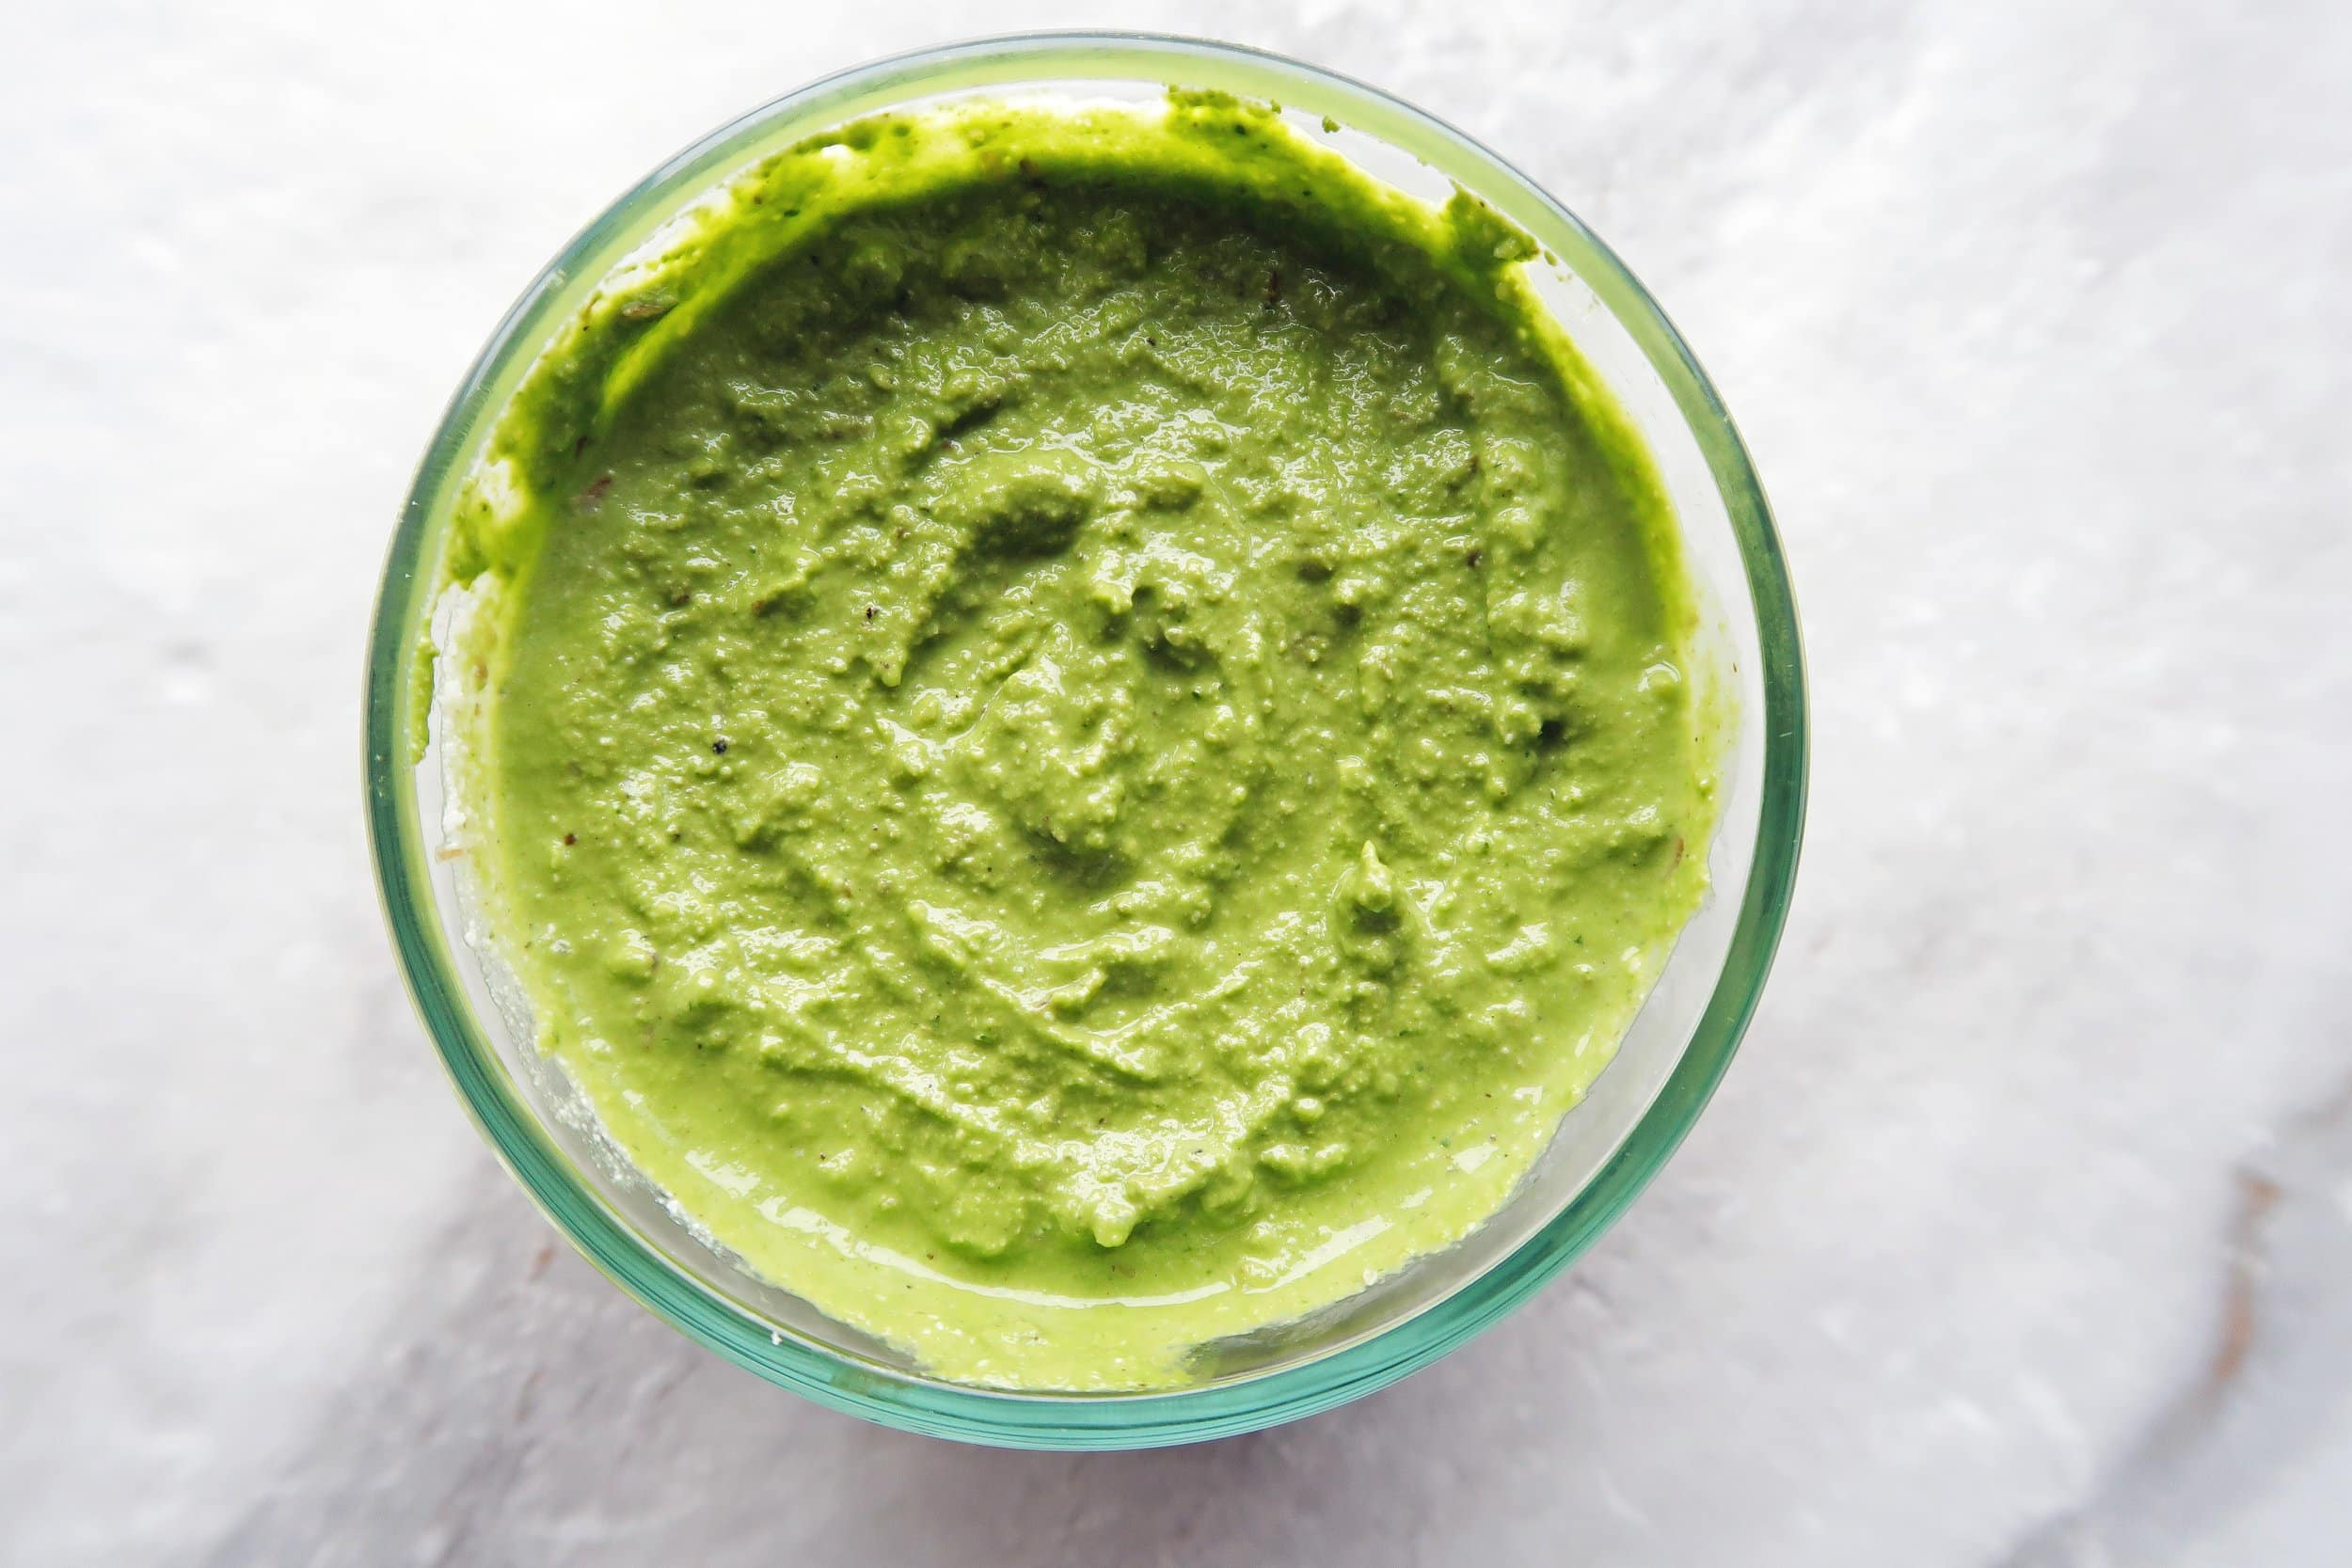 A smooth and creamy pesto in a bowl.